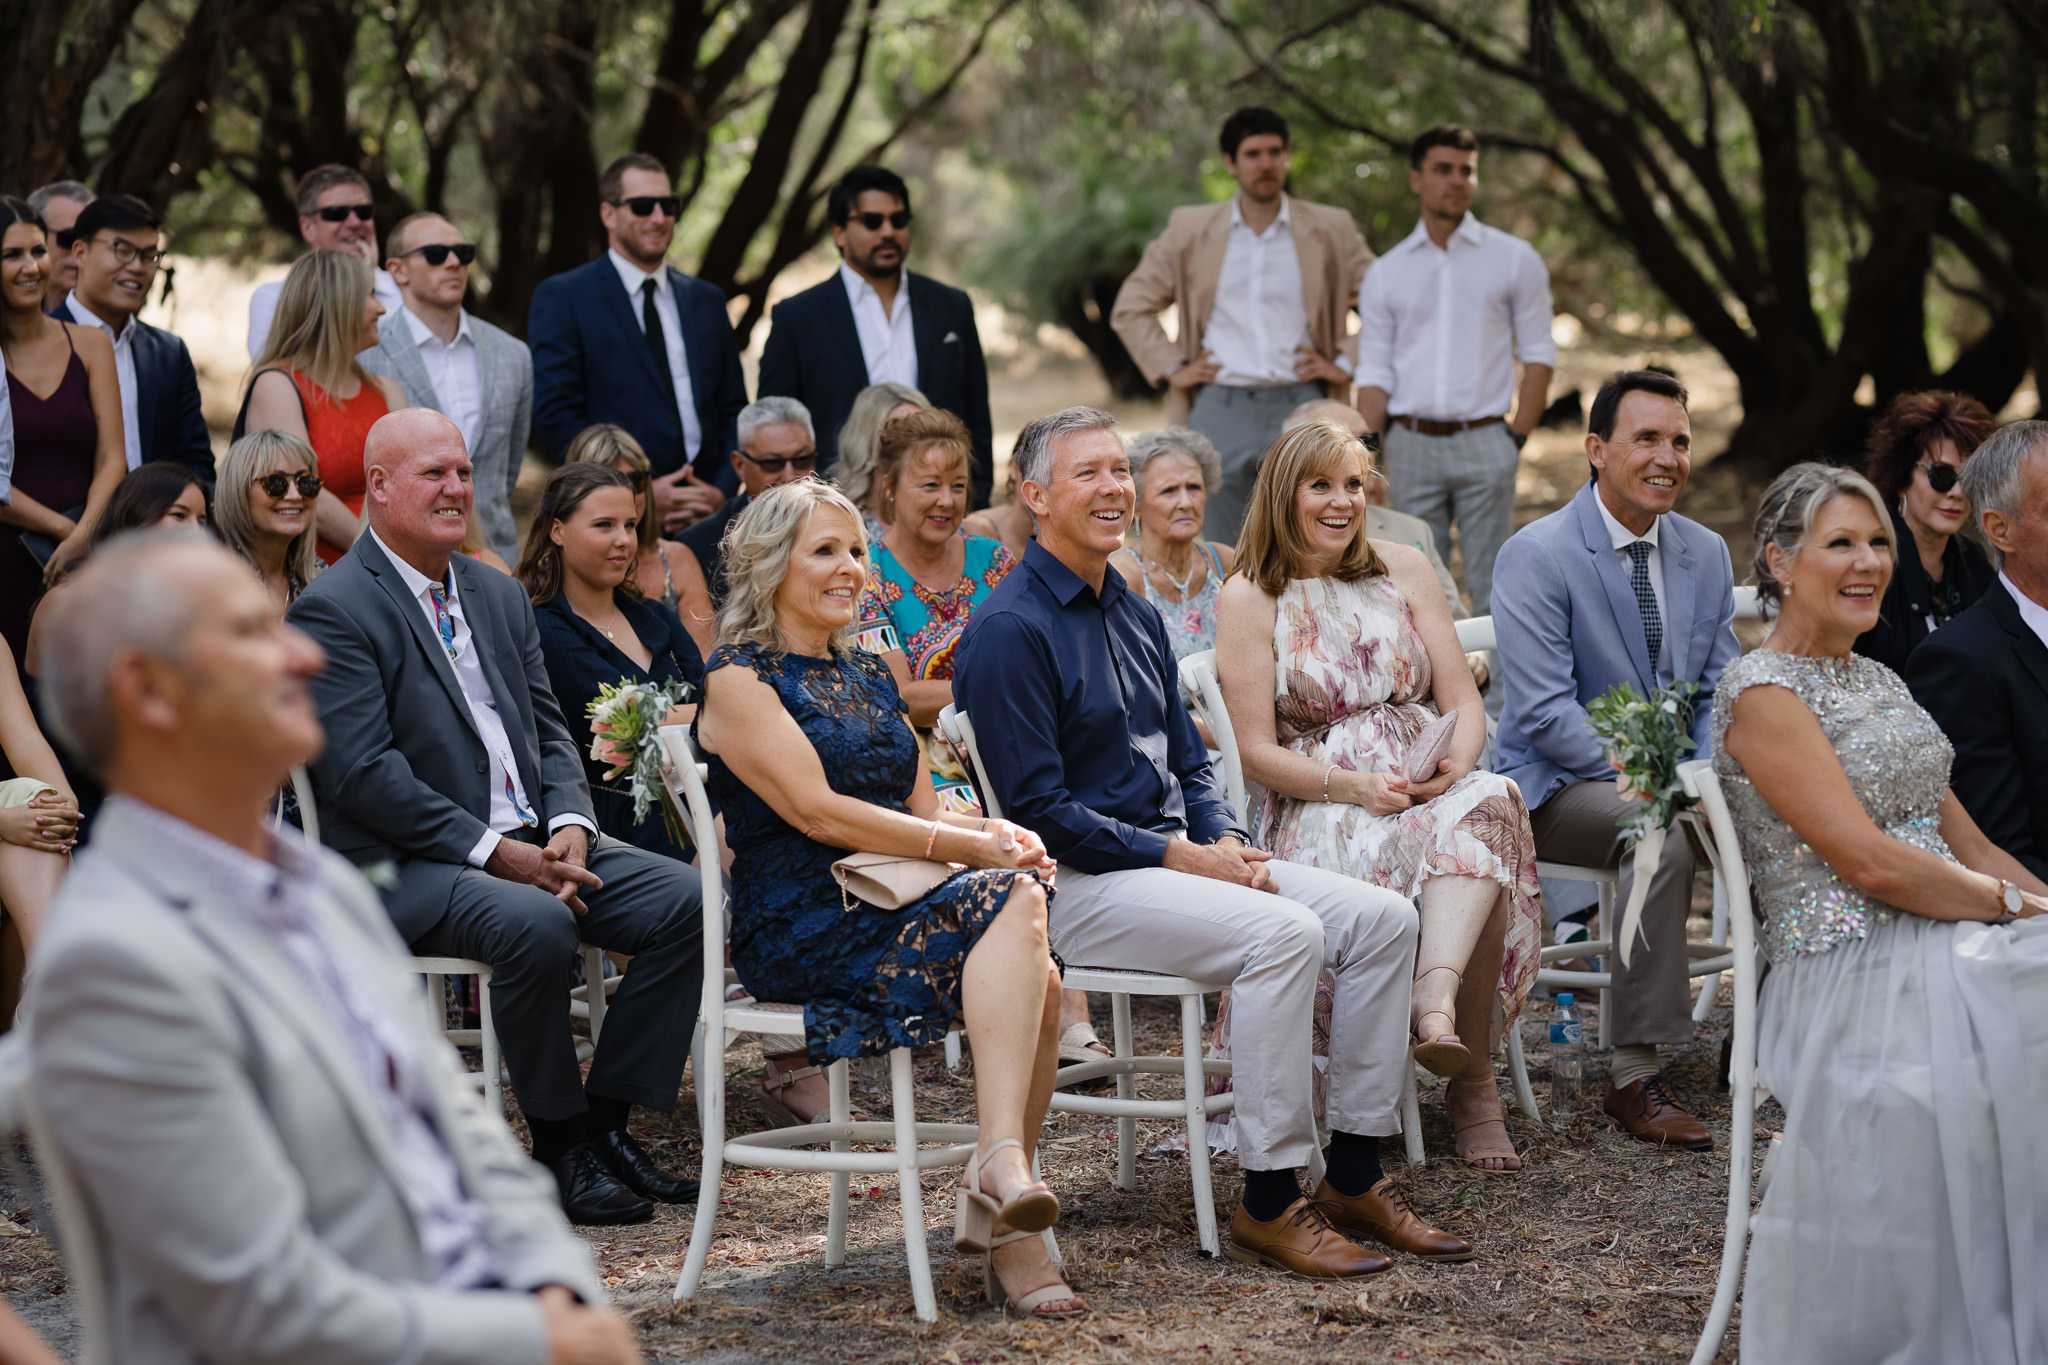 Happy wedding guests laughing during outdoor ceremony in Yallingup